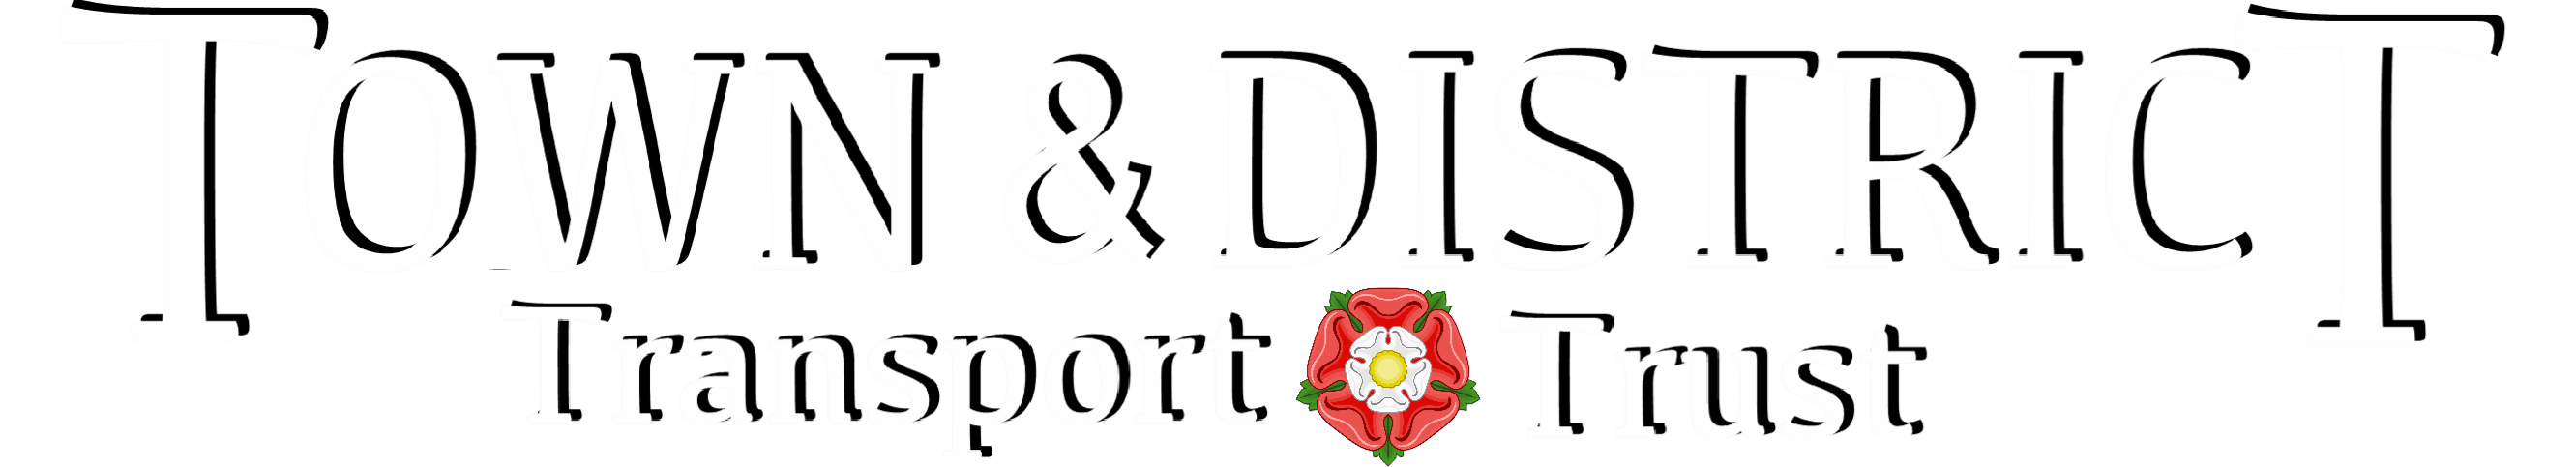 Town & District Transport Trust